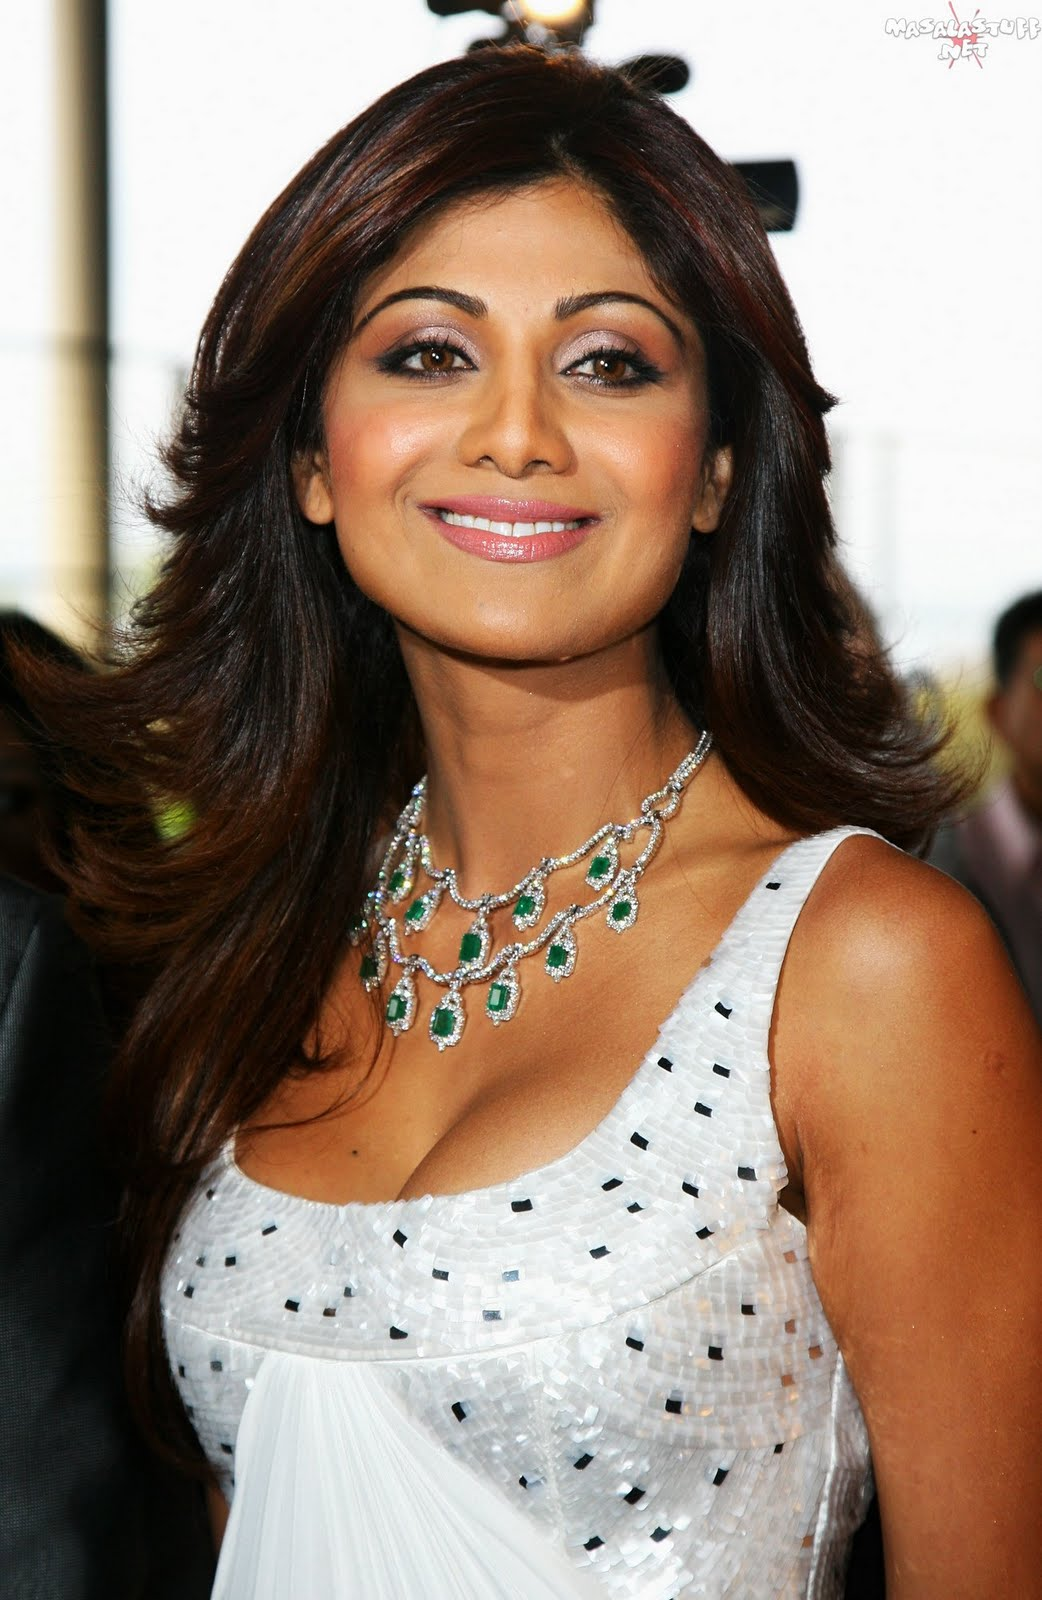 South Indian Hot Photos Shilpa Shetty Hot Albums-3204